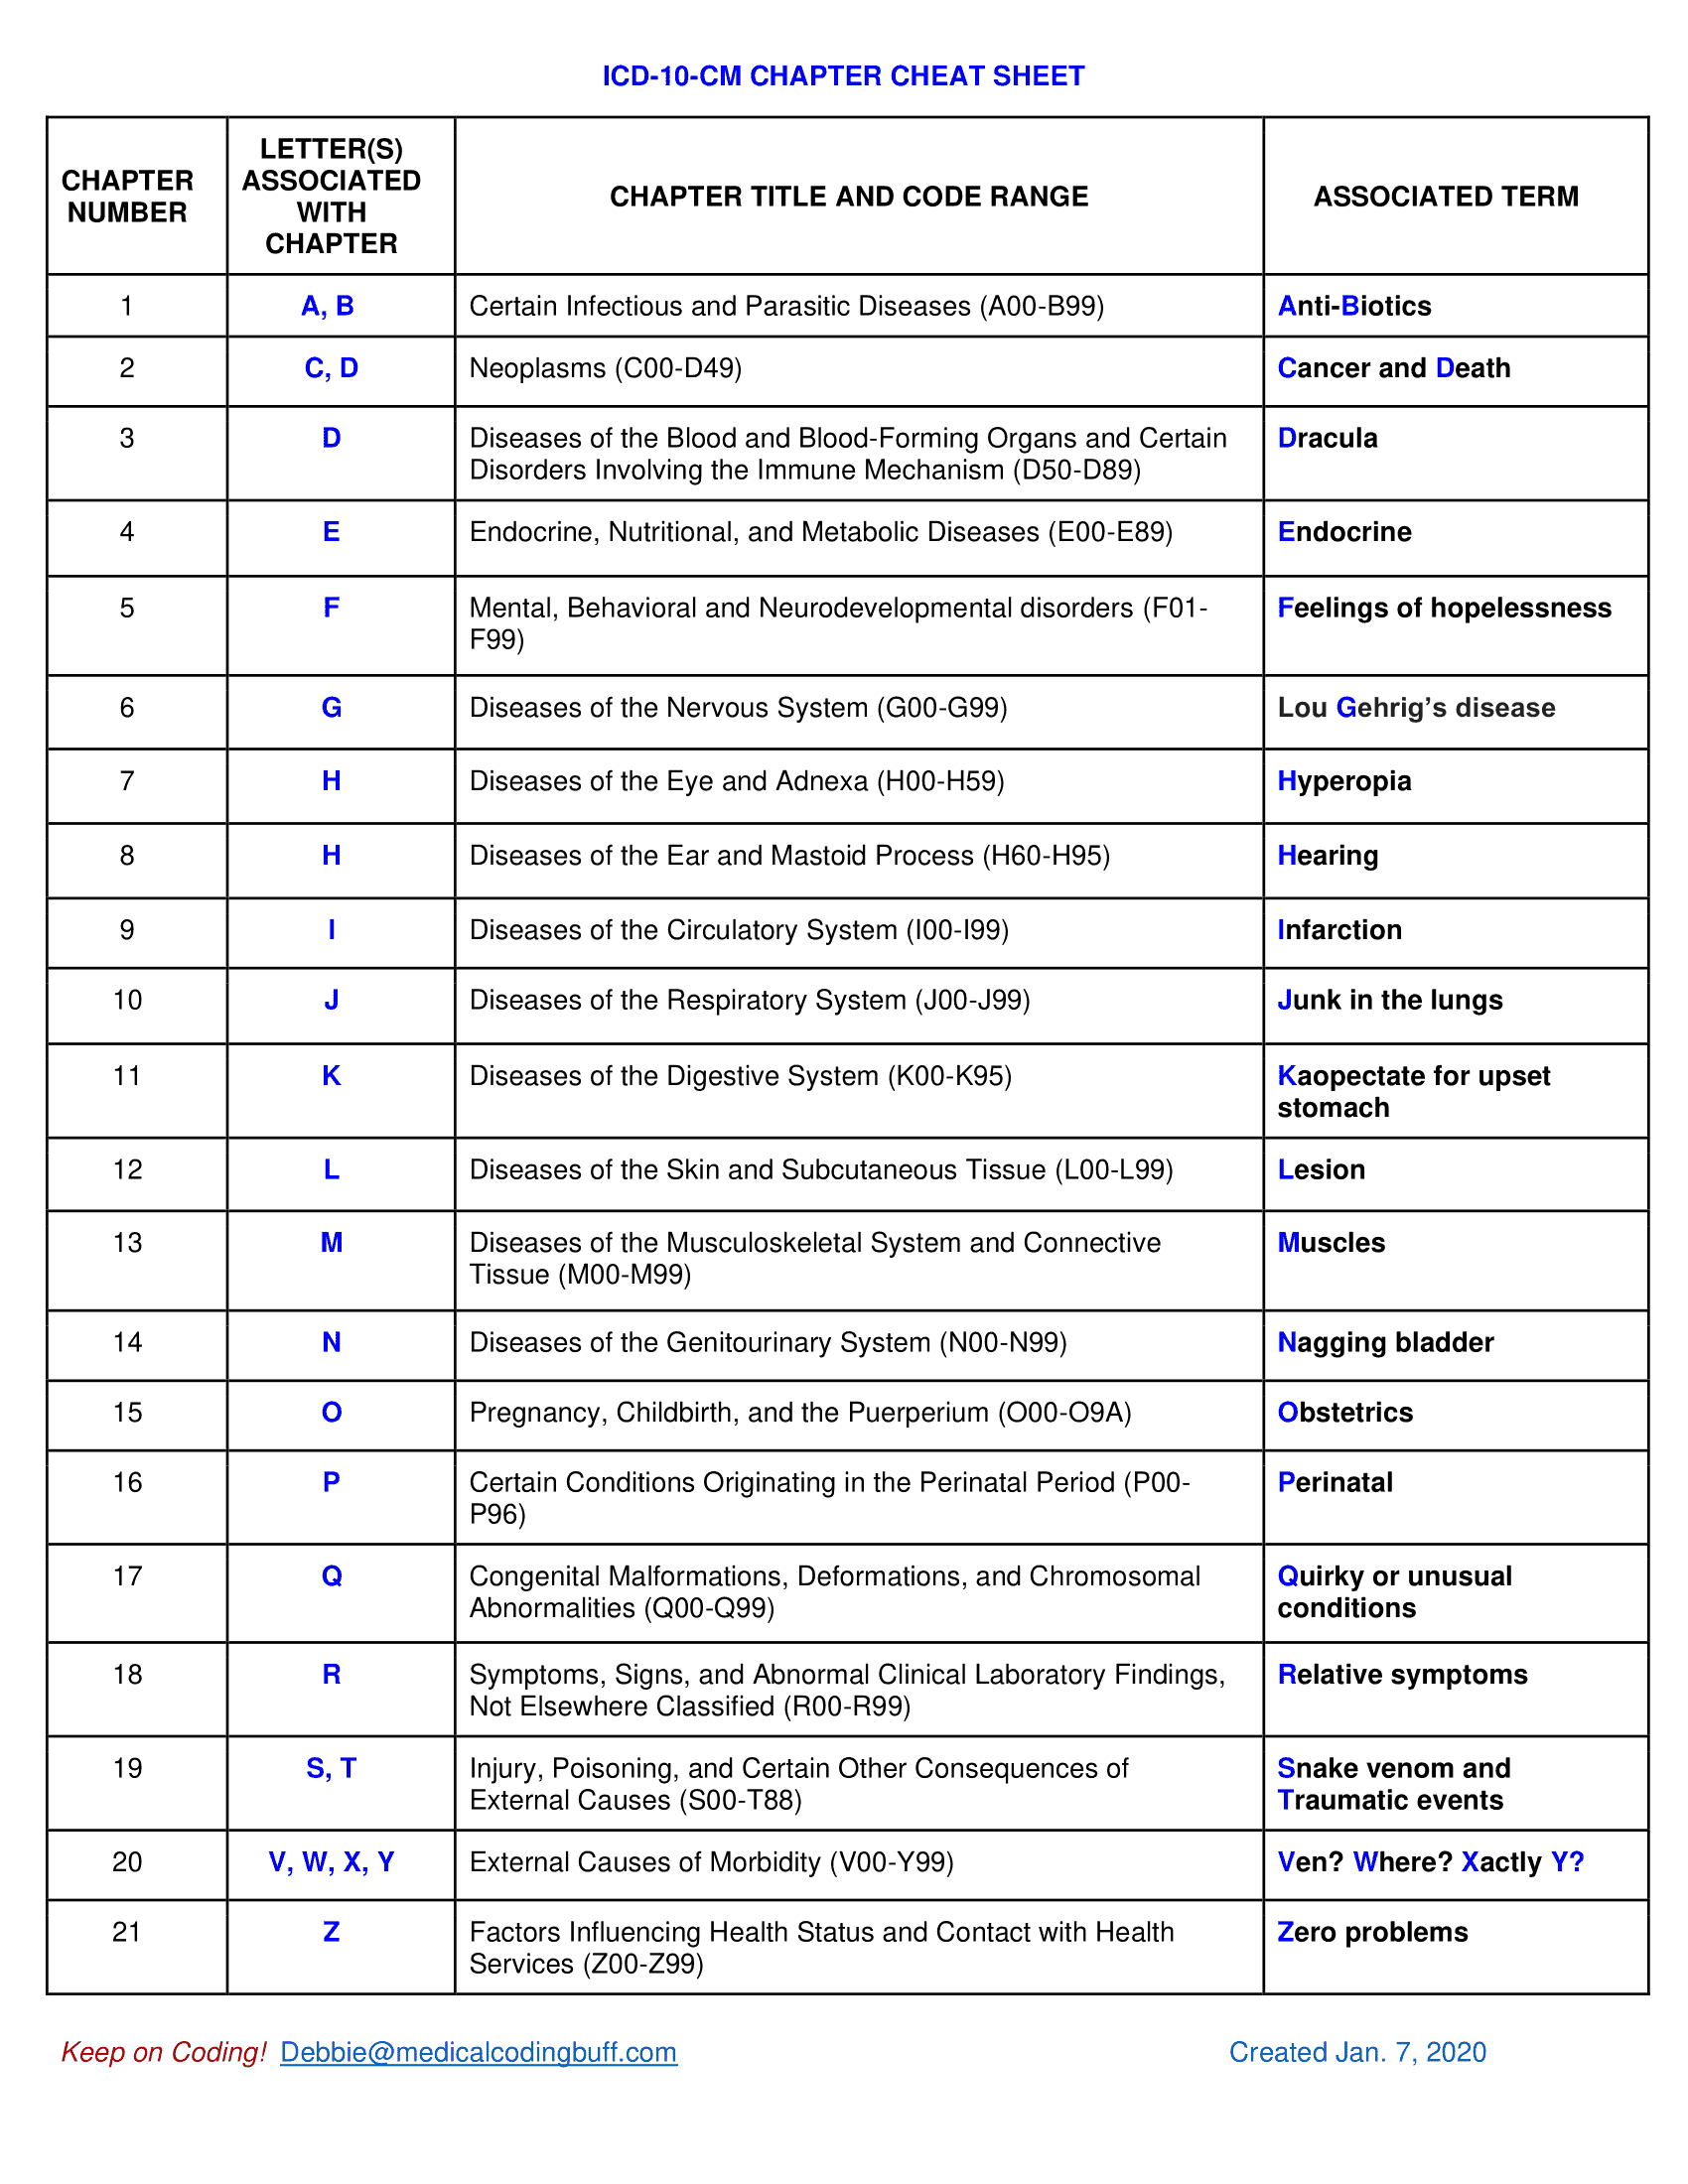 FY 2021 ICD-10-CM Chapter Cheat Sheet (By the Chapter Letters)